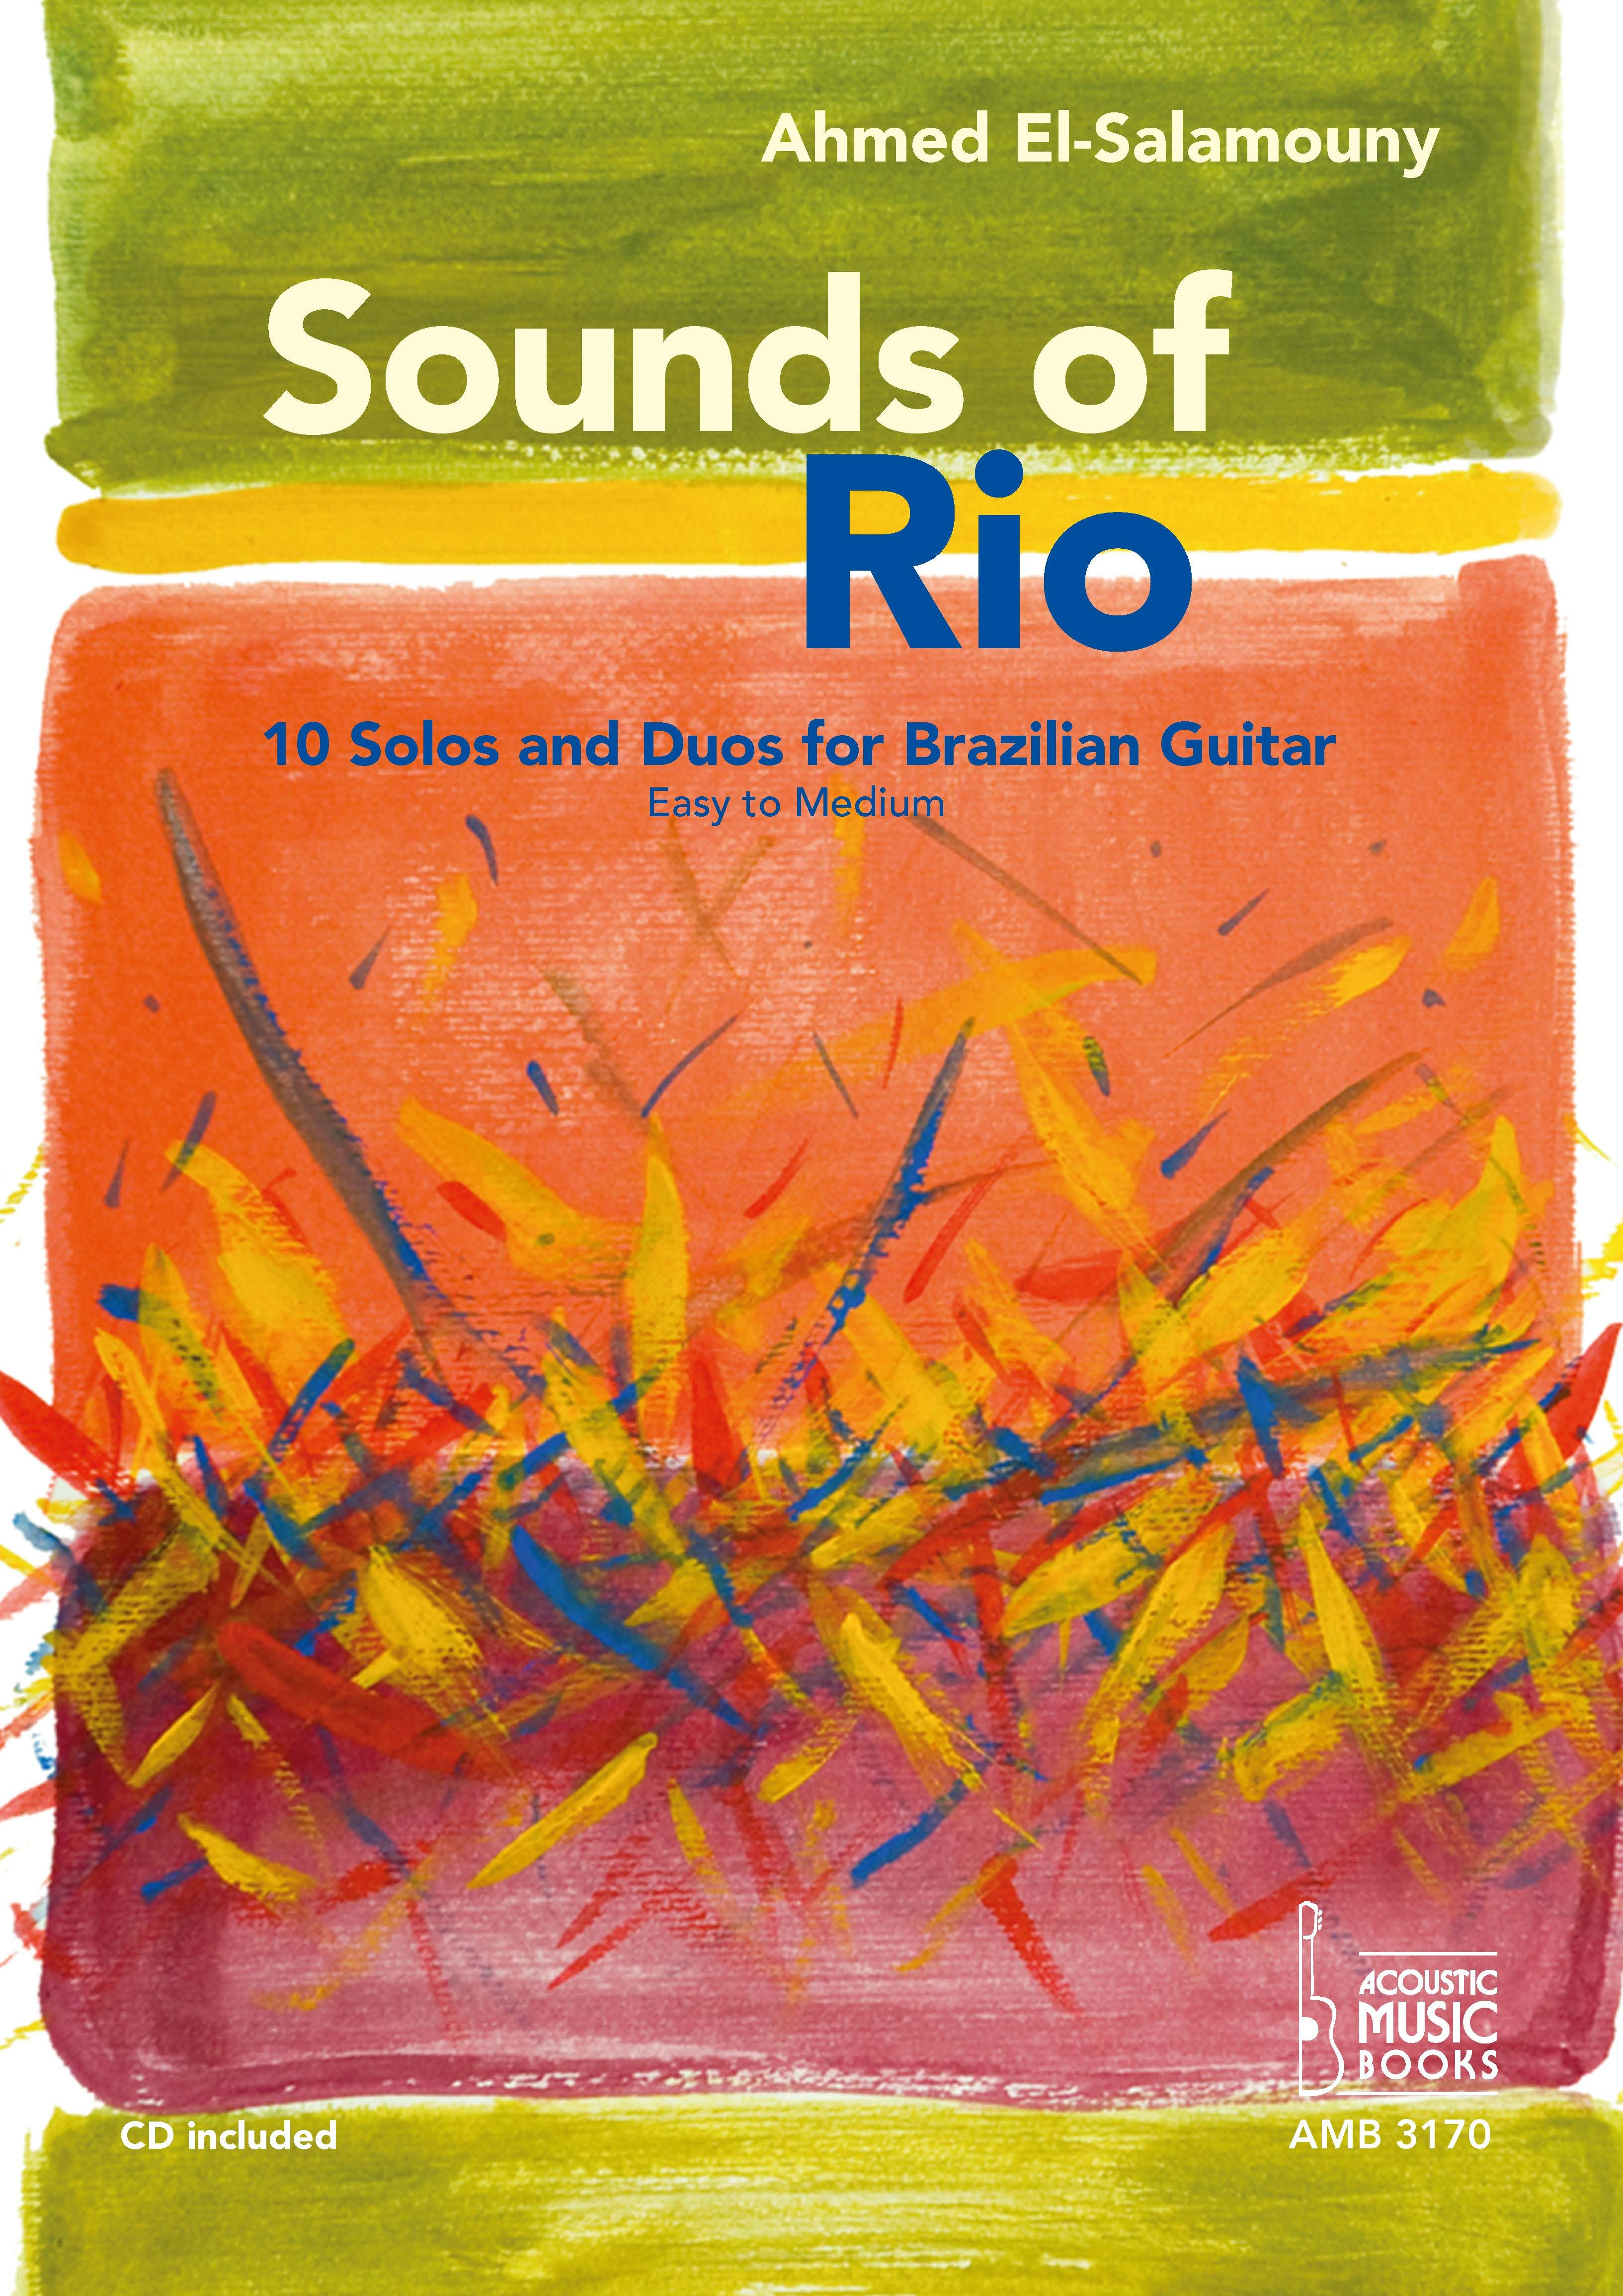 El-Salamouny Sounds of Rio